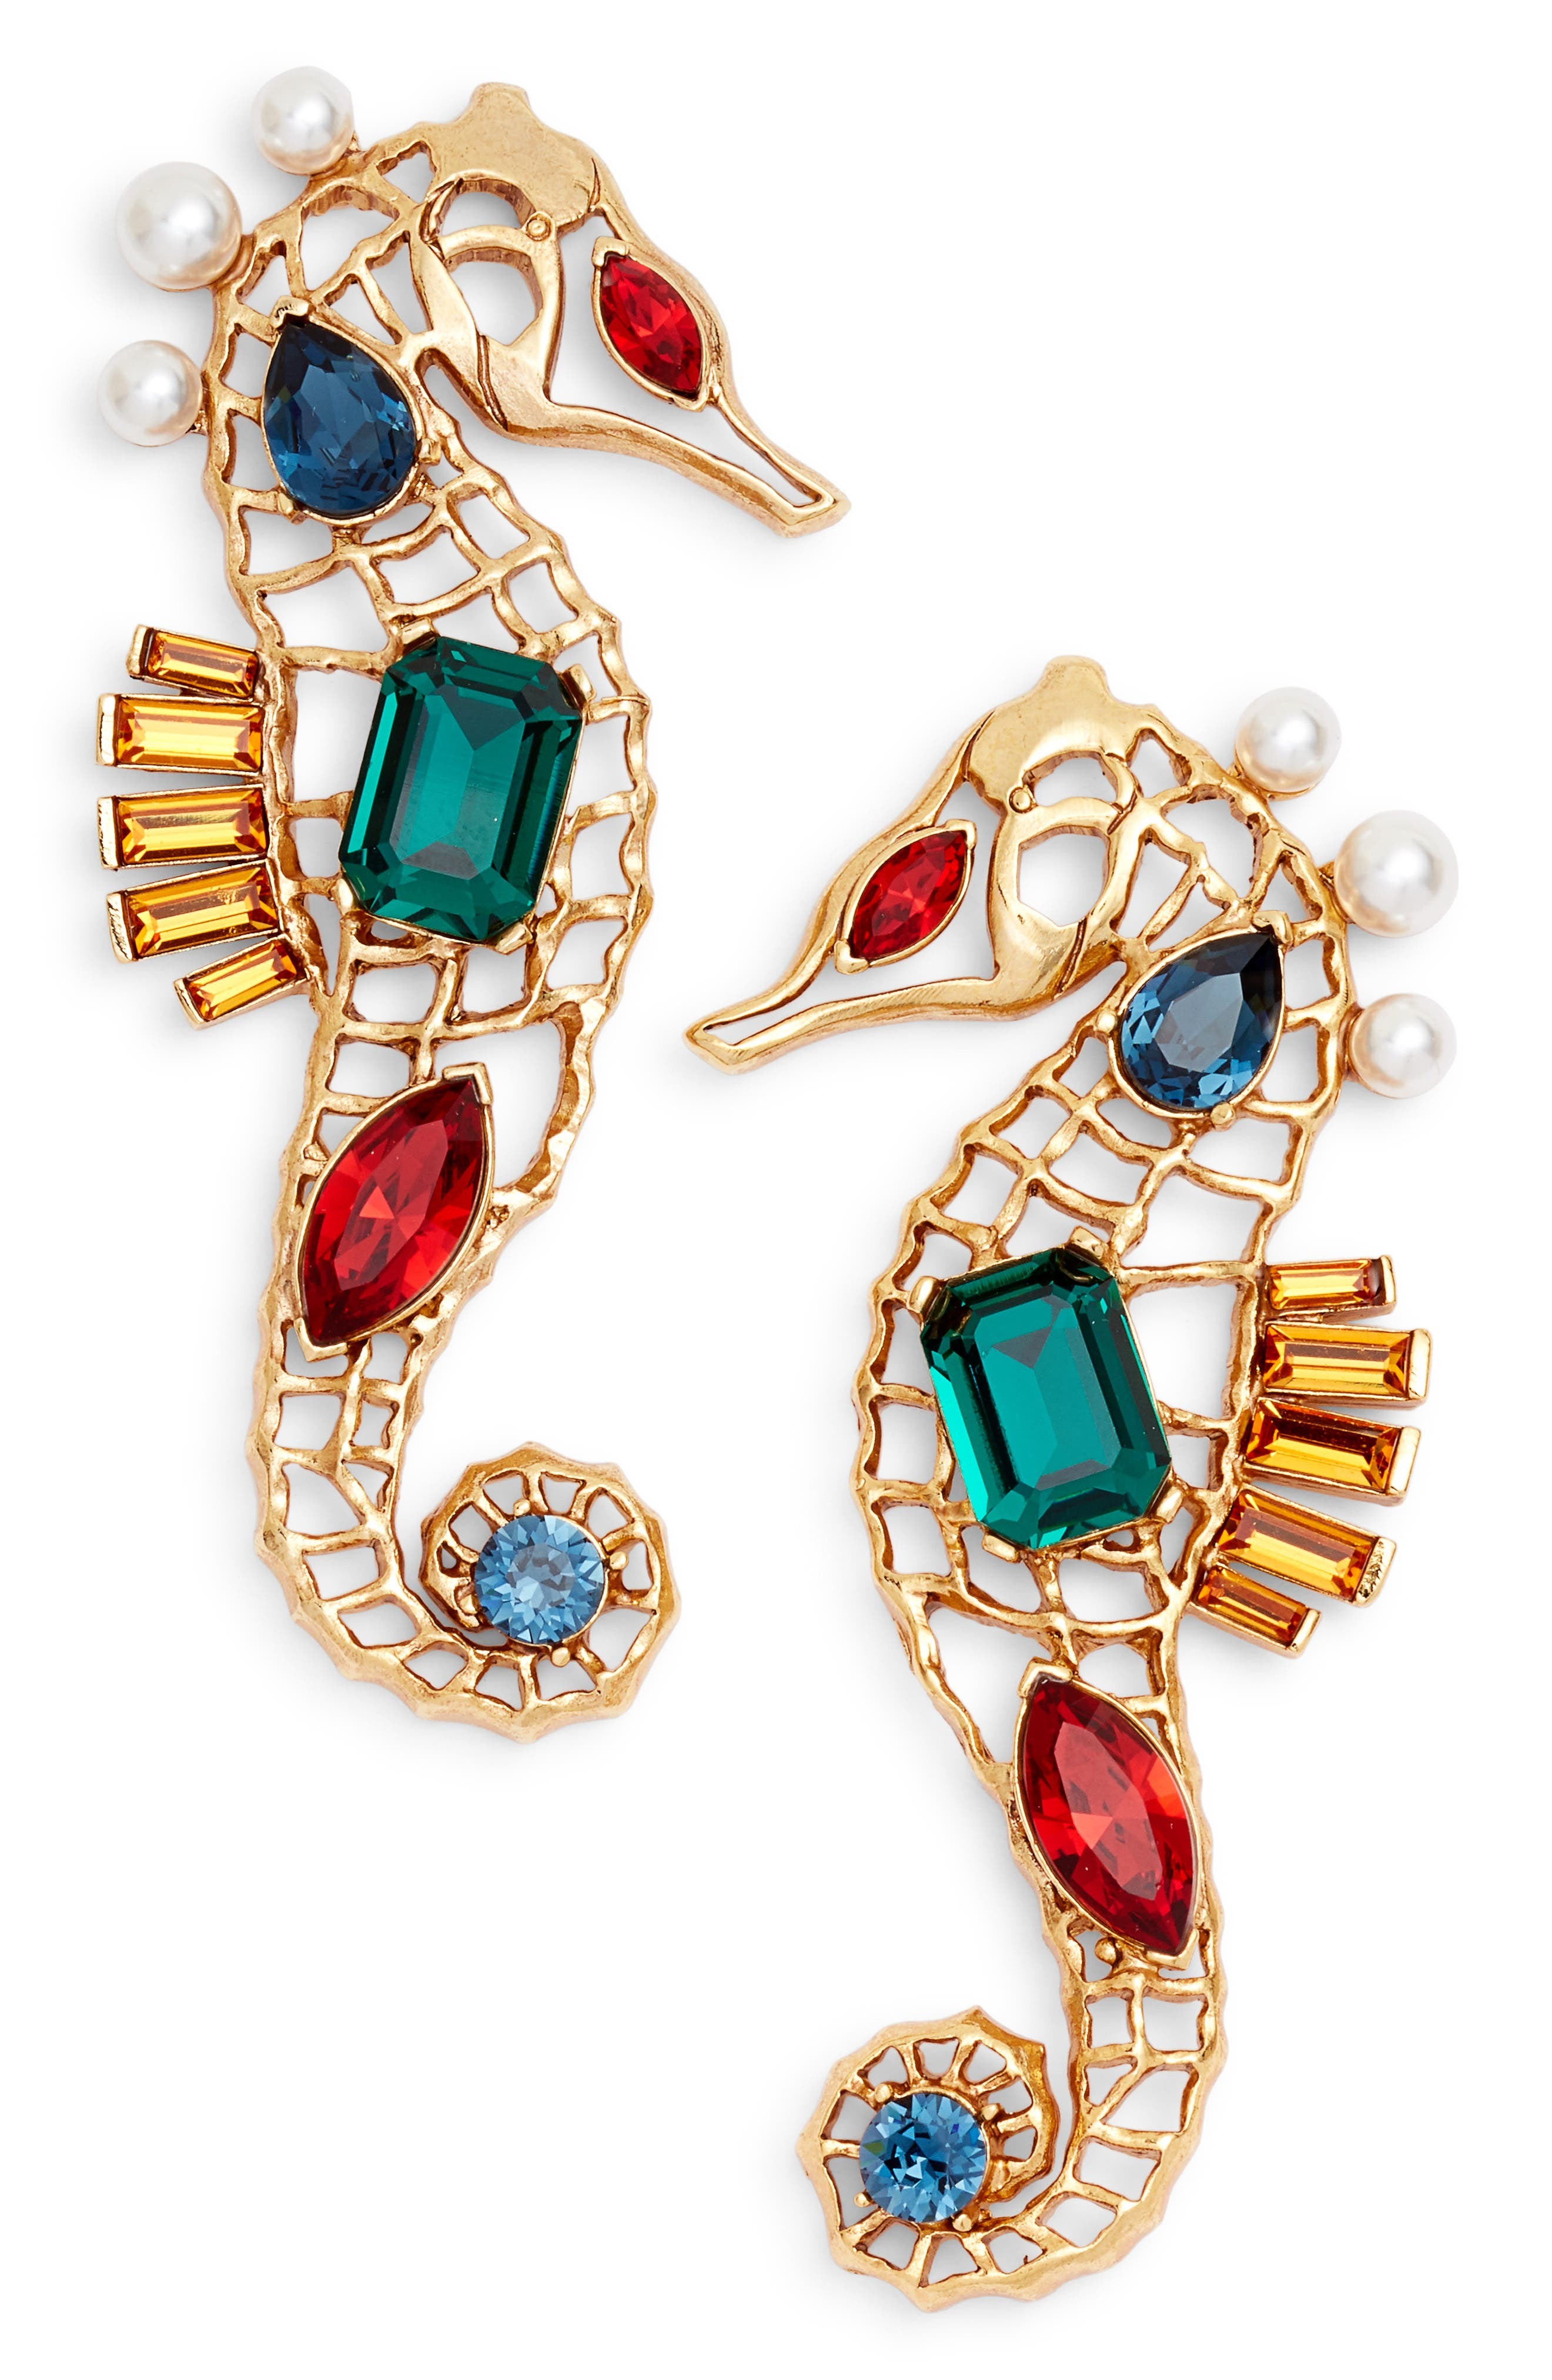 Oscar de la Renta Jeweled Seahorse Earrings